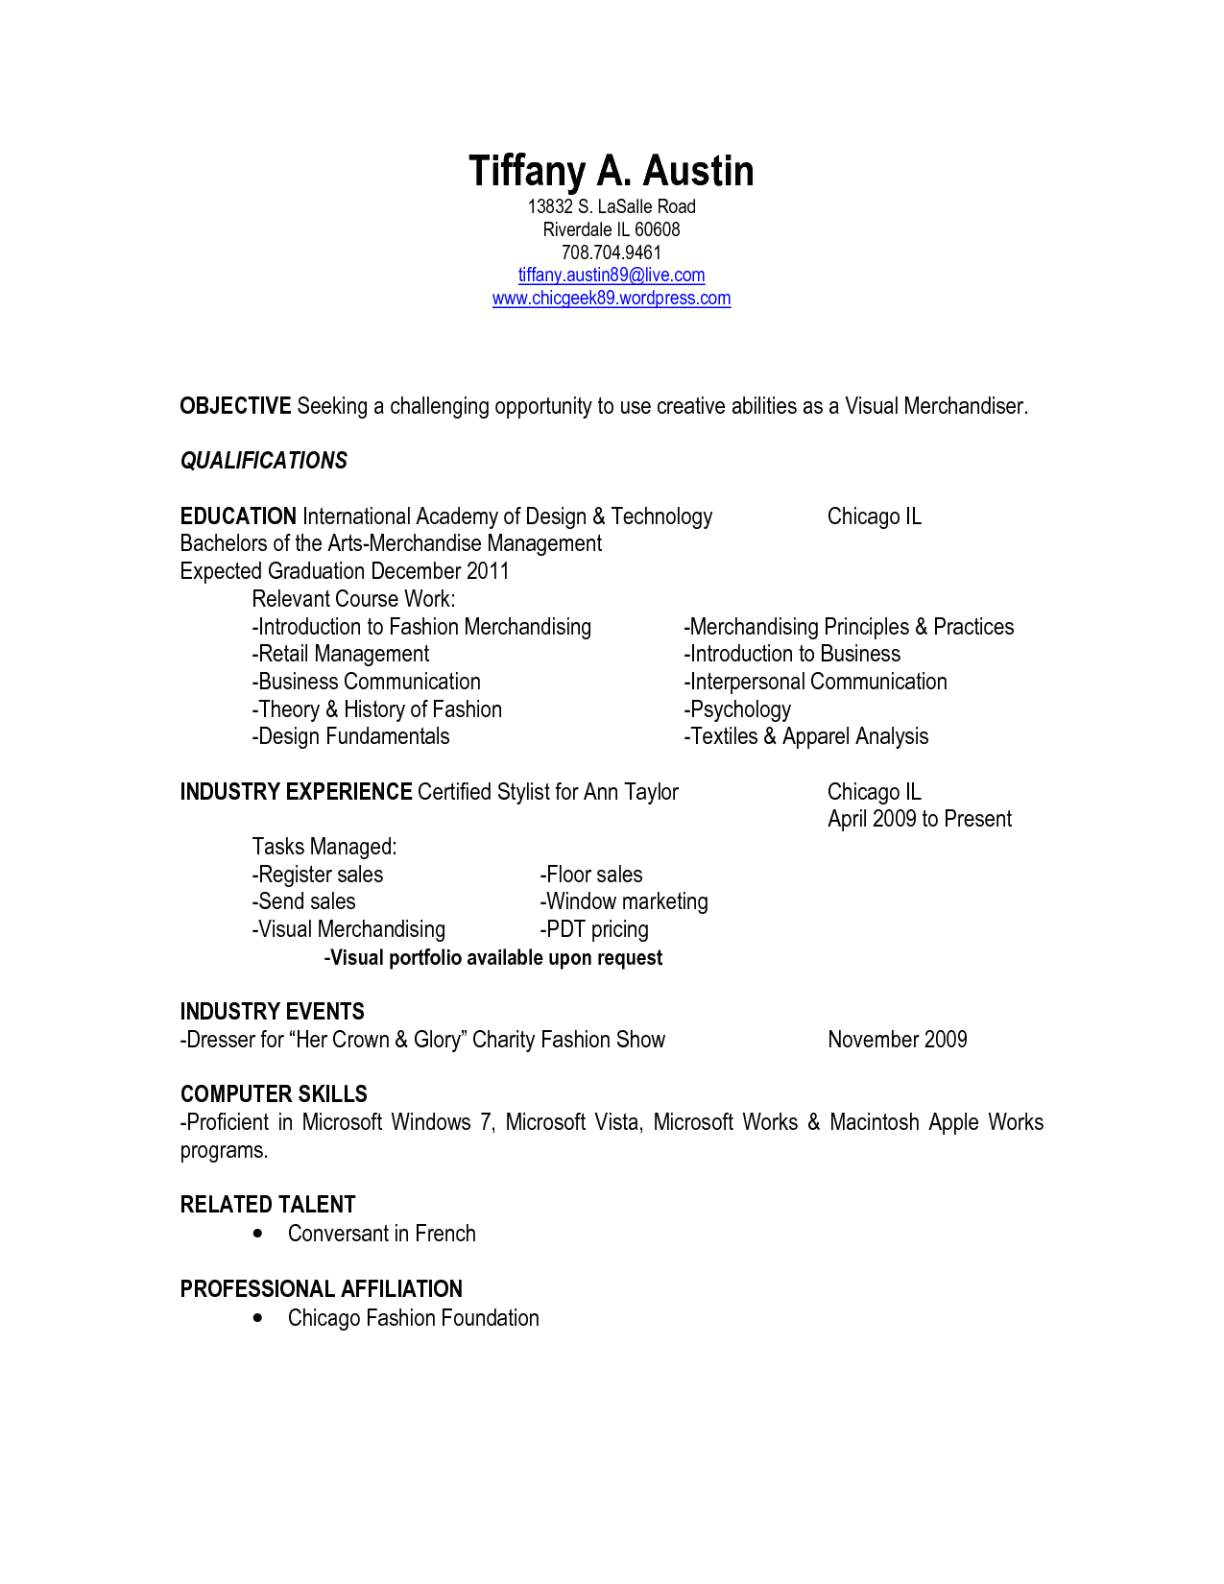 apple store resume sample elegant visual merchandiser resume sample velvet jobs merchandising